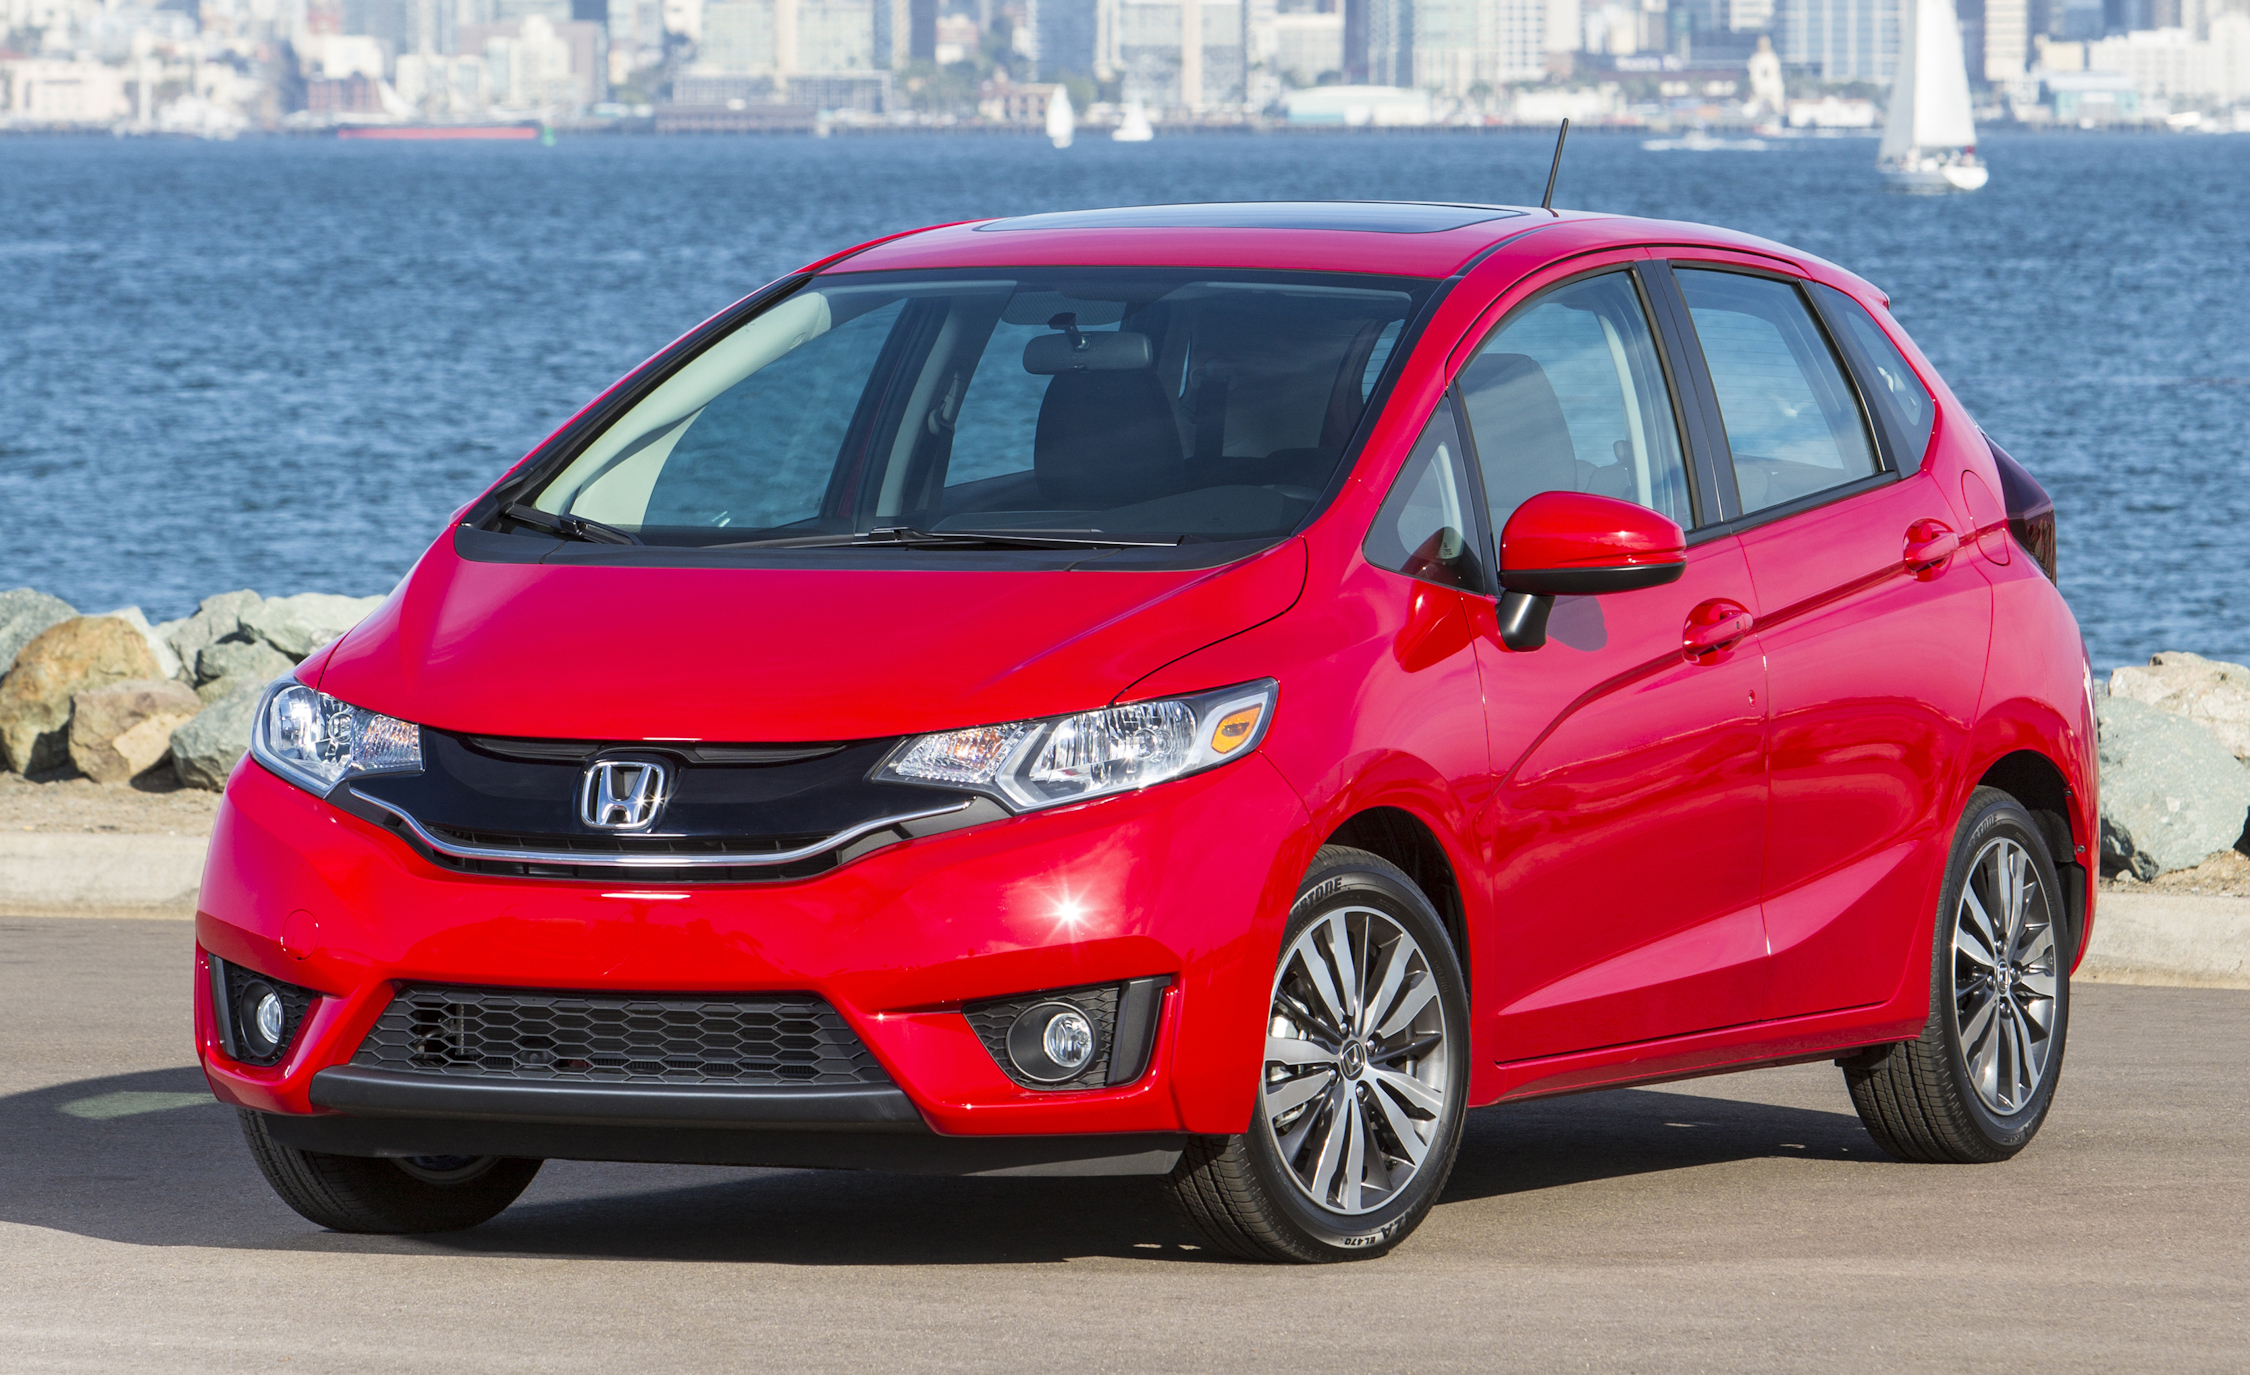 enjoying 2015 honda fit riding 668 cars performance. Black Bedroom Furniture Sets. Home Design Ideas